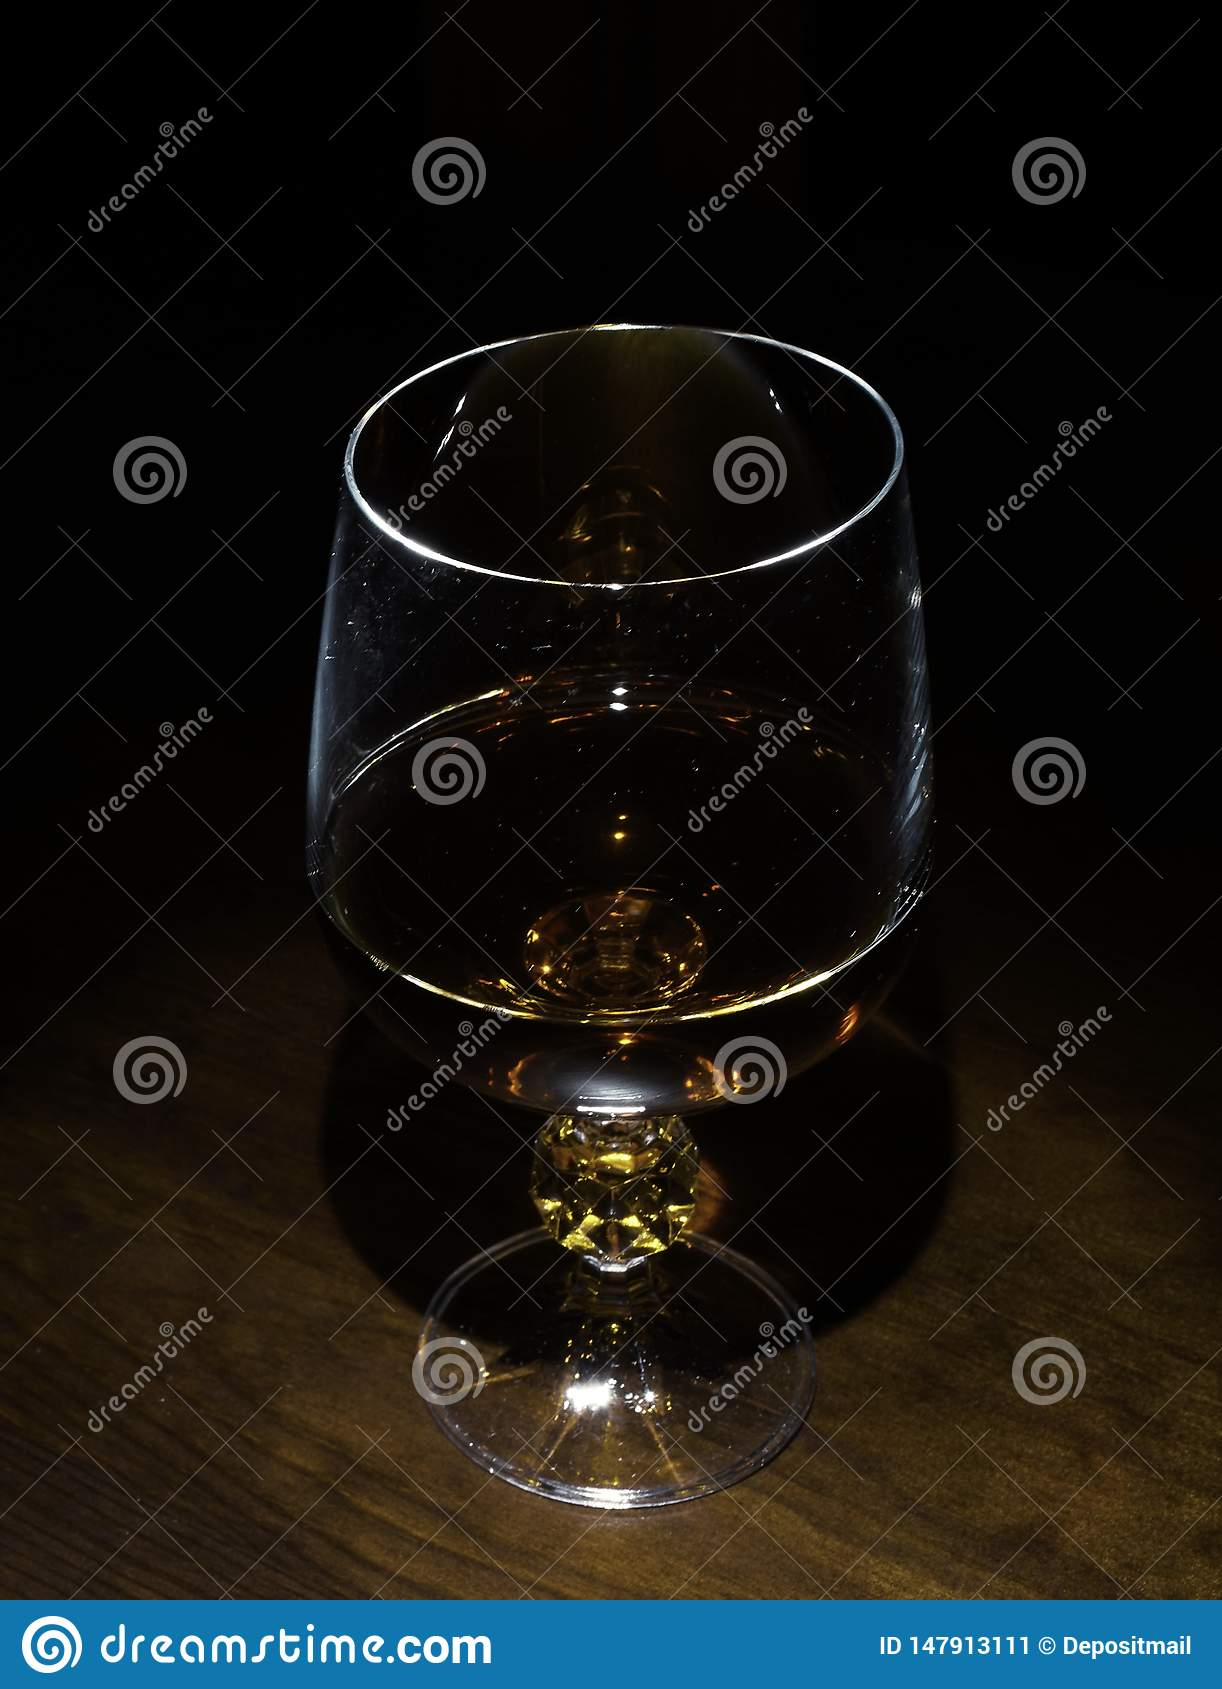 Glasses and candle on the table